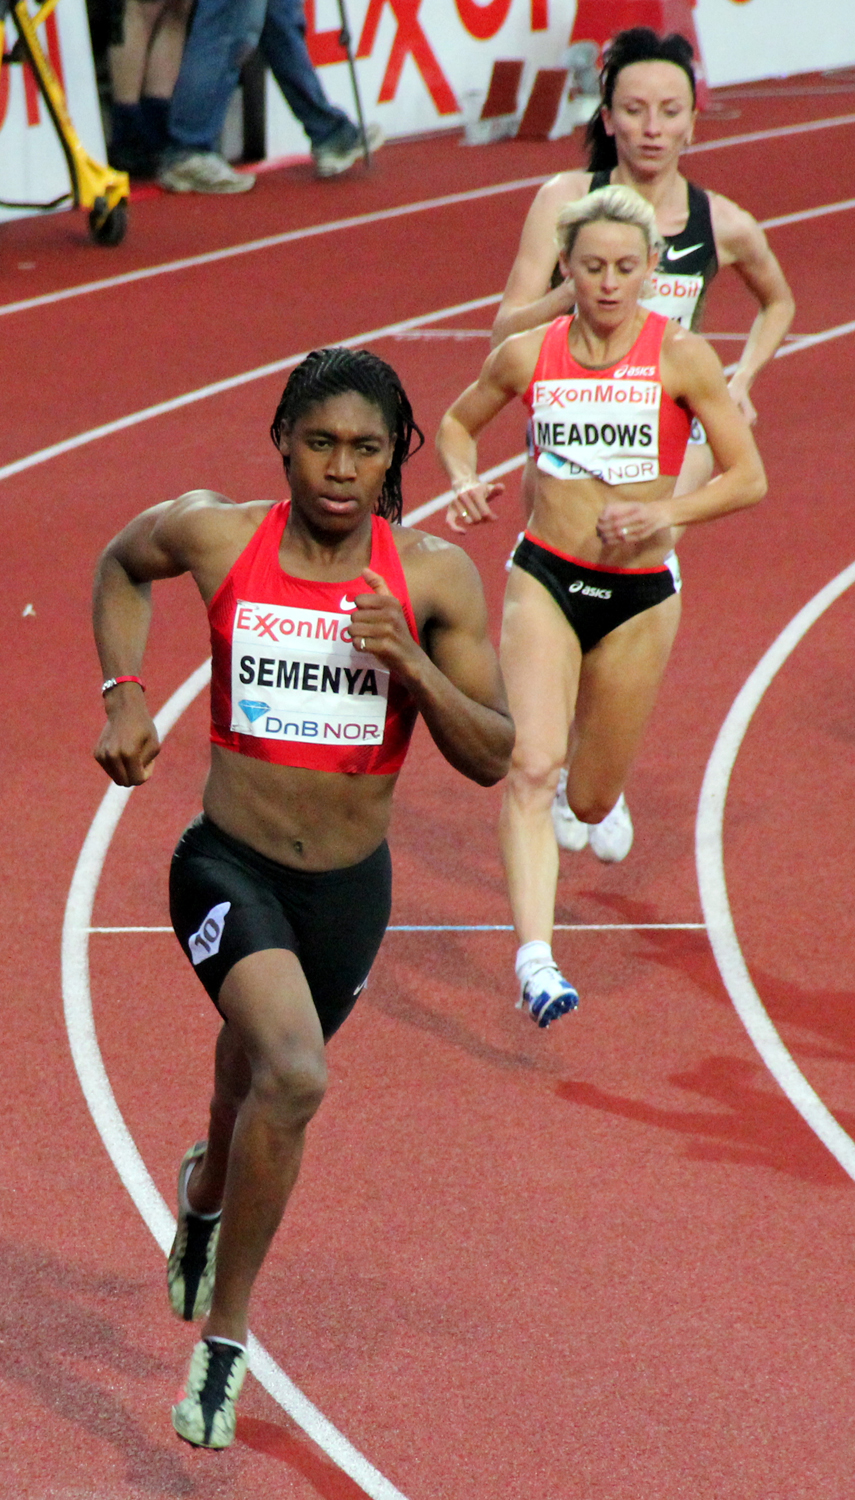 Caster Semenya, a South African track-and-field star, has faced criticism for competing with female runners because of her supposed hyperandrogenism.